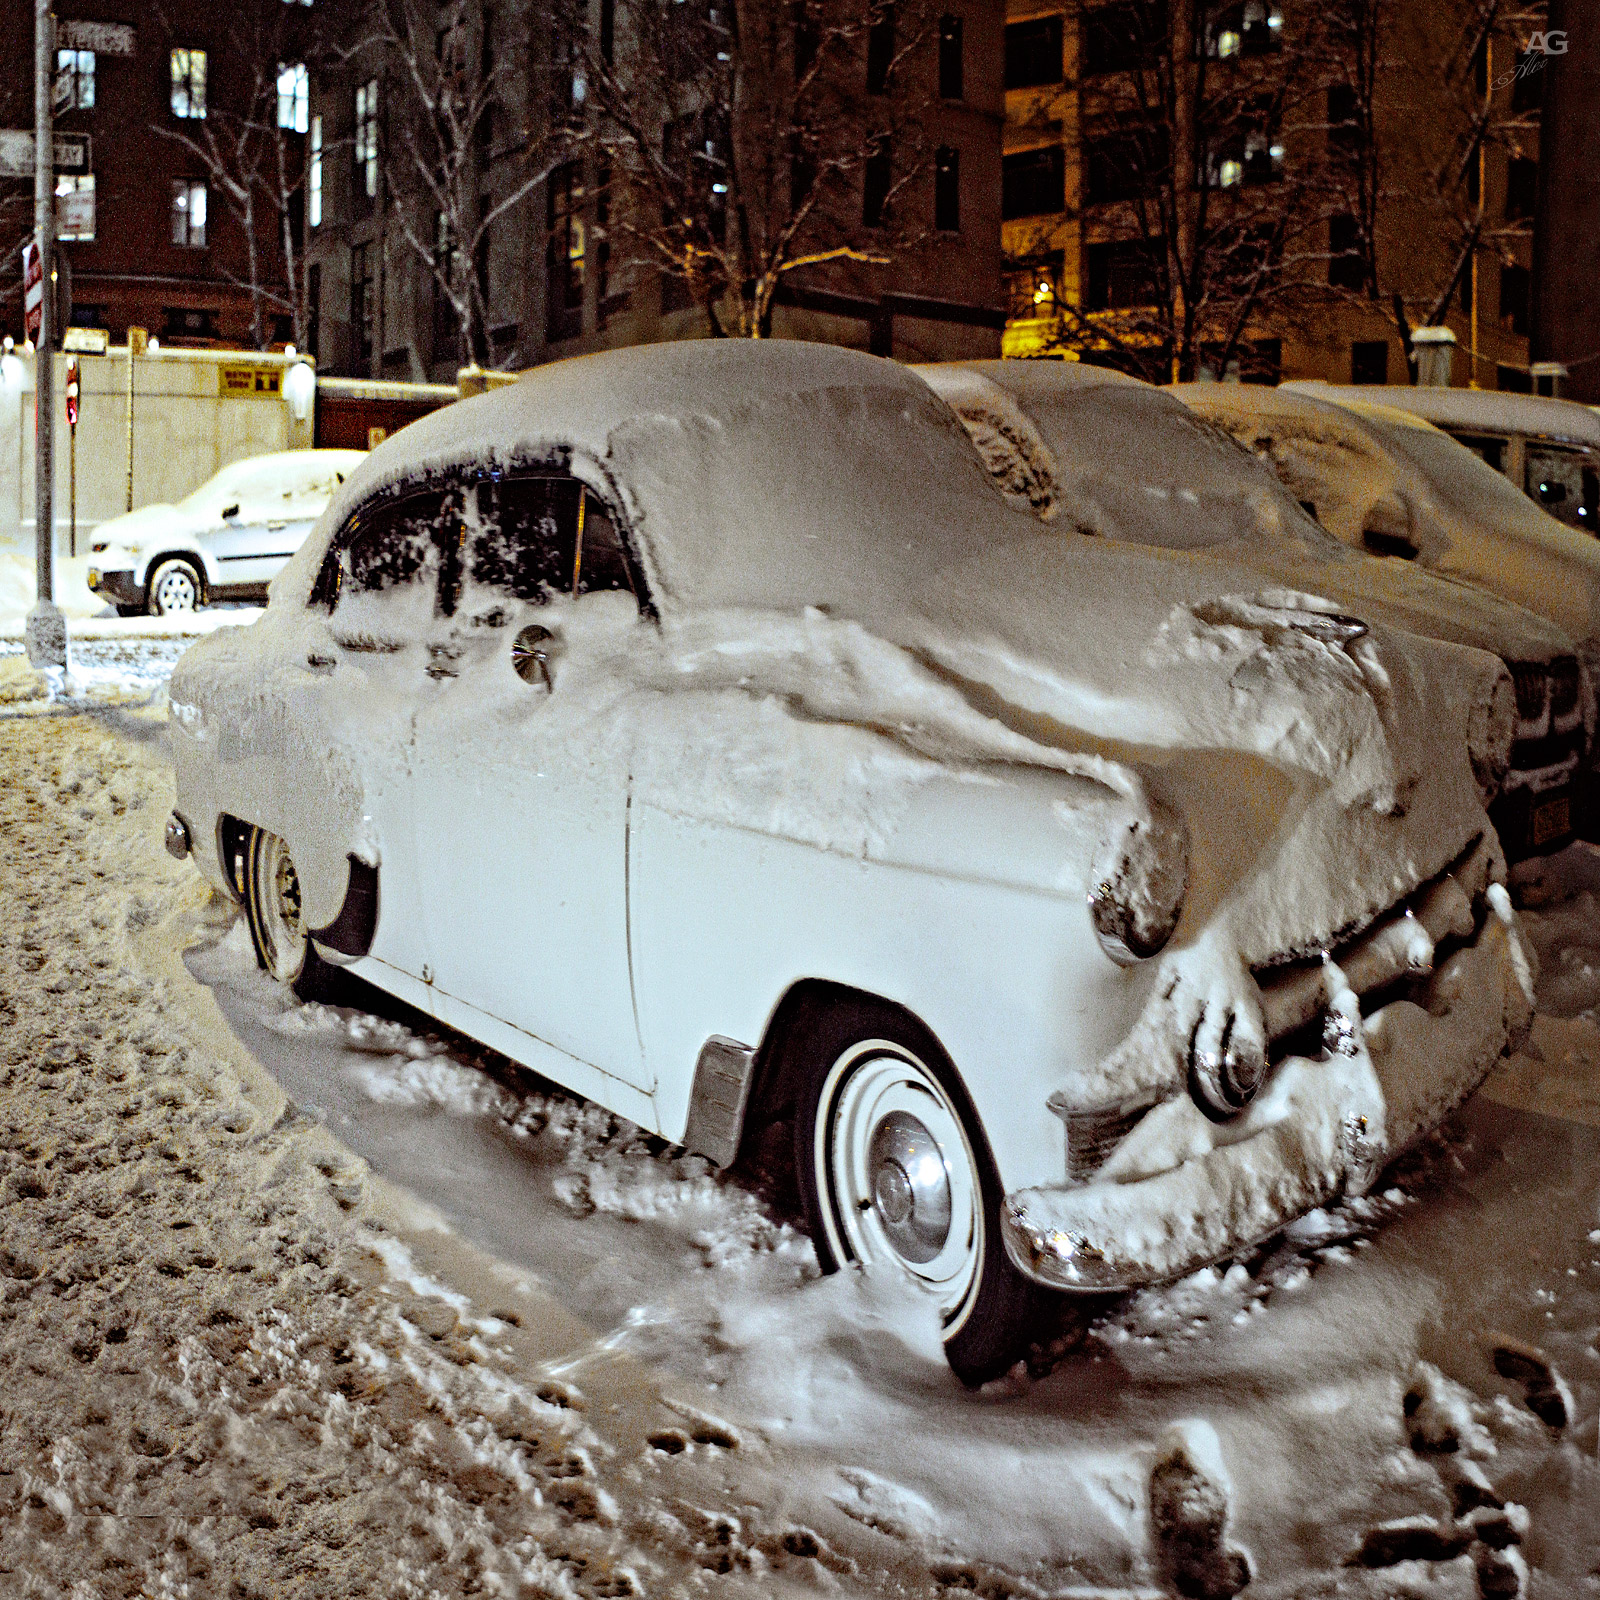 OldCarUnderTheSnowNight_squished_1600